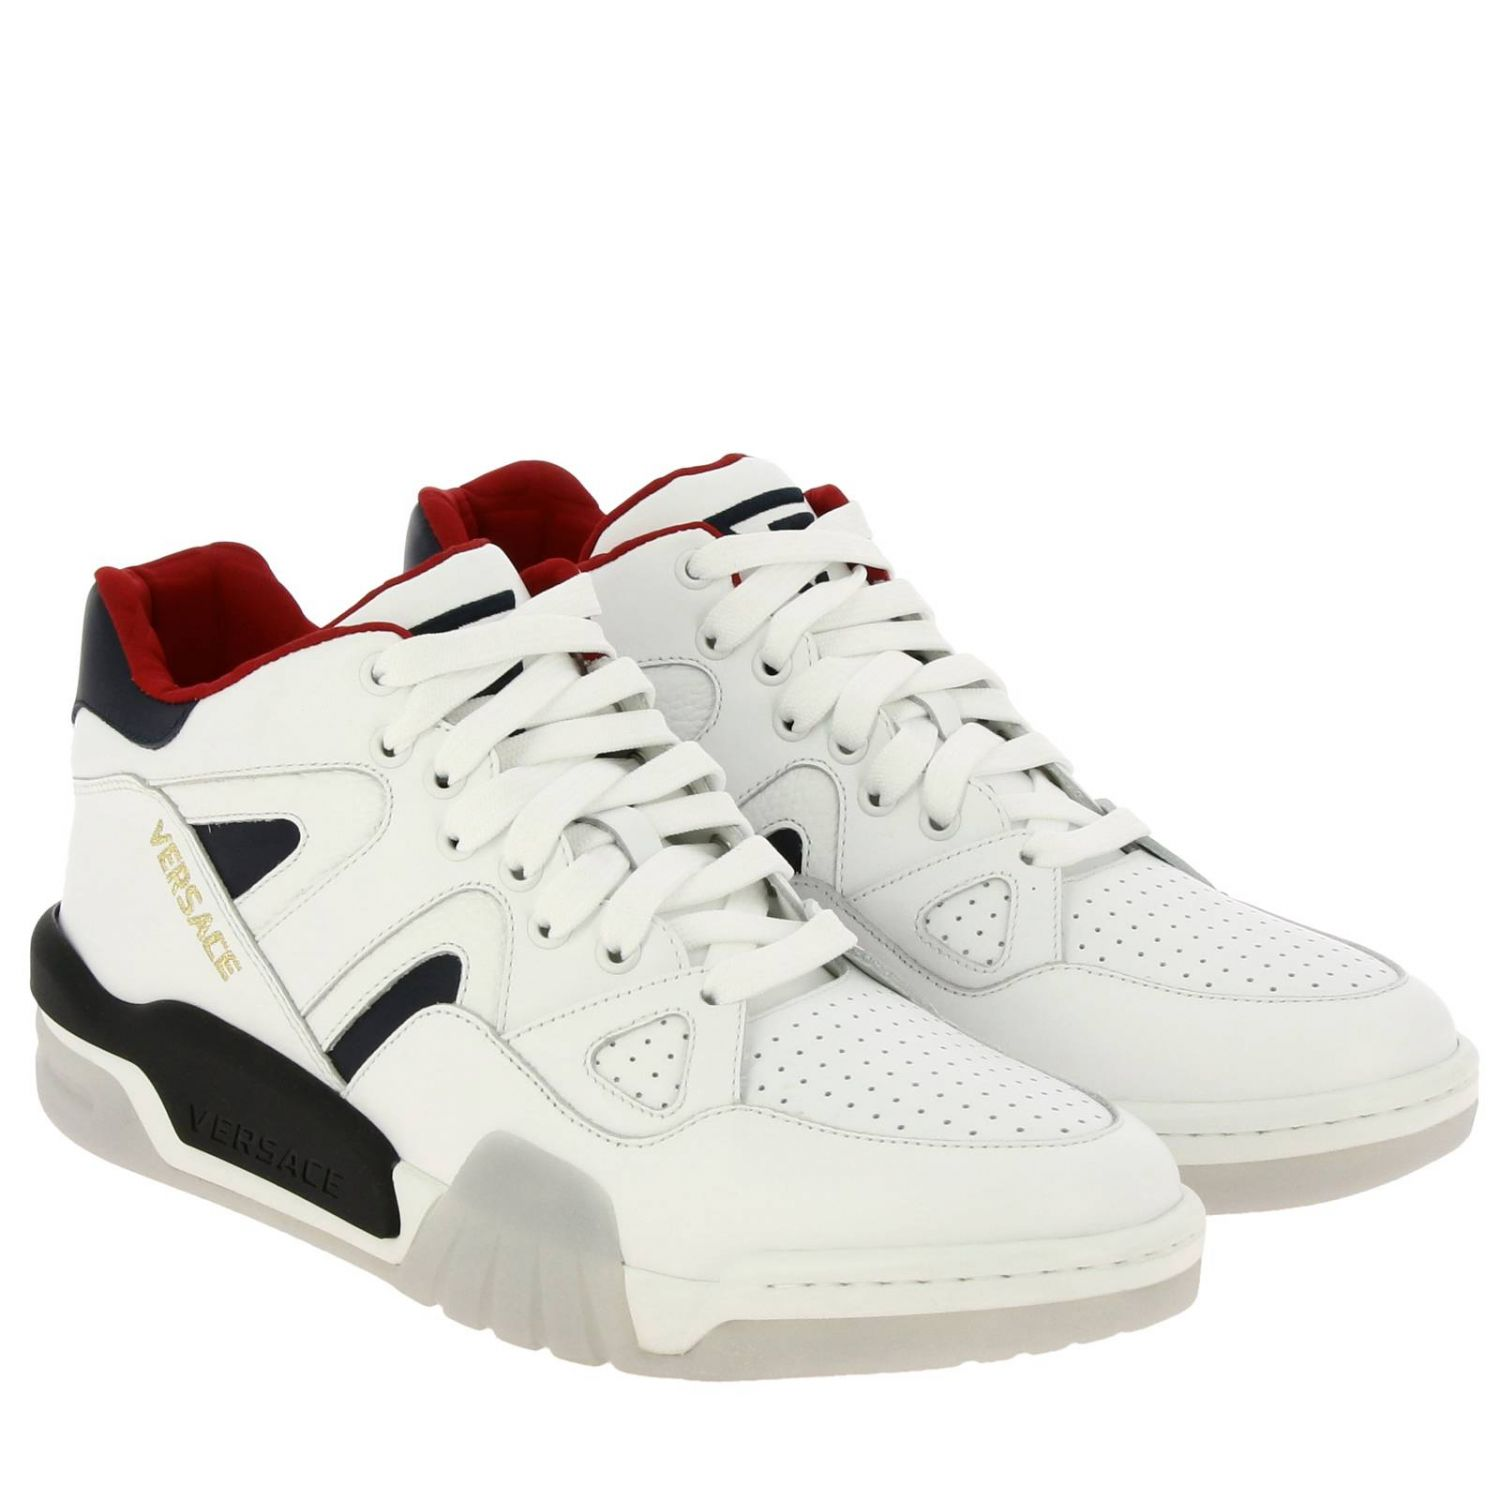 Versace sneakers in leather with maxi rubber sole white 2